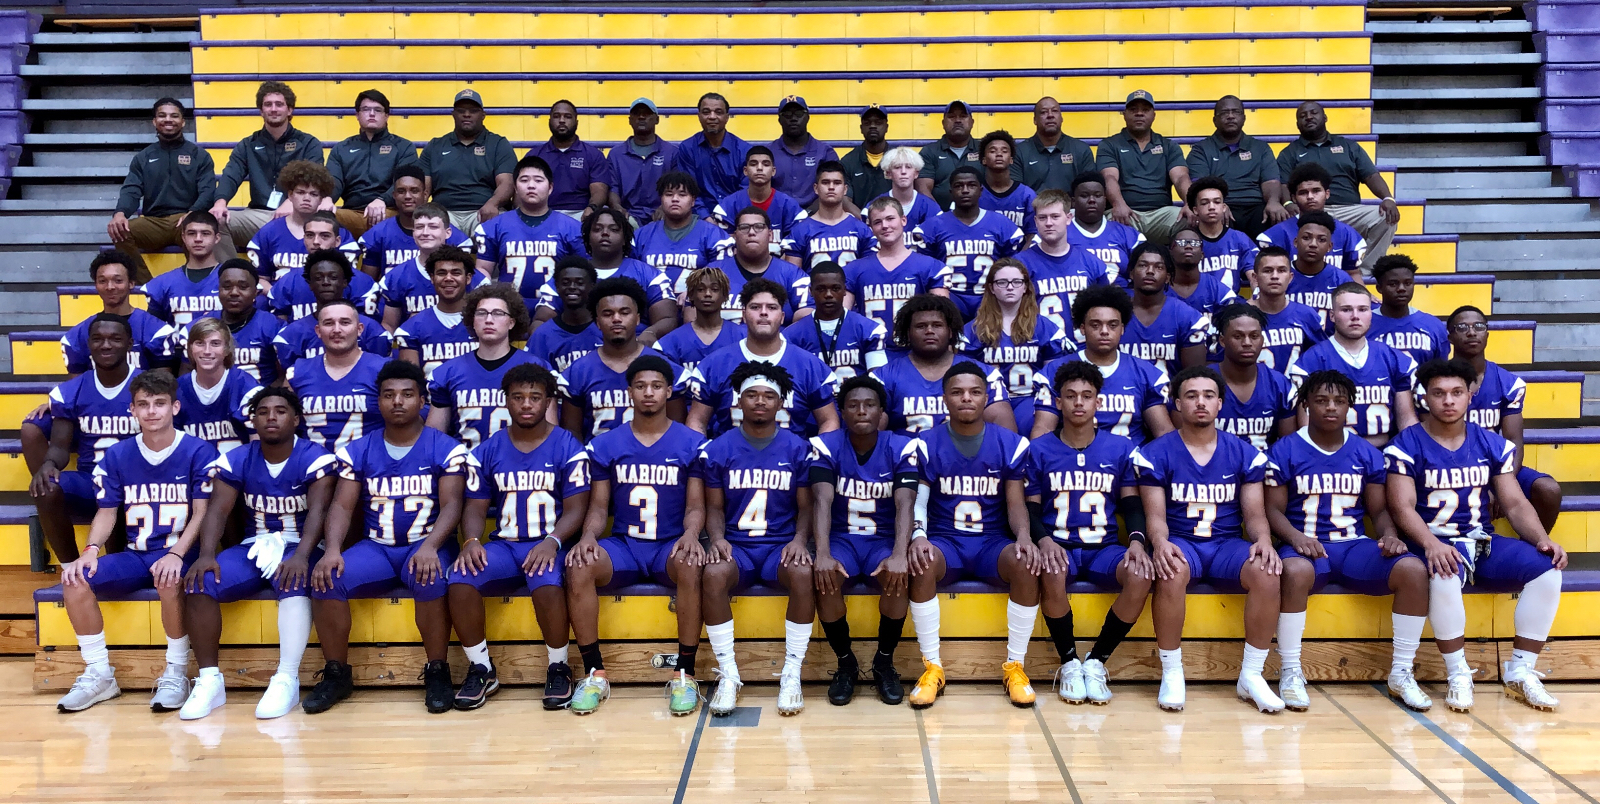 Marion takes on Hobart this Friday for football semi-state title